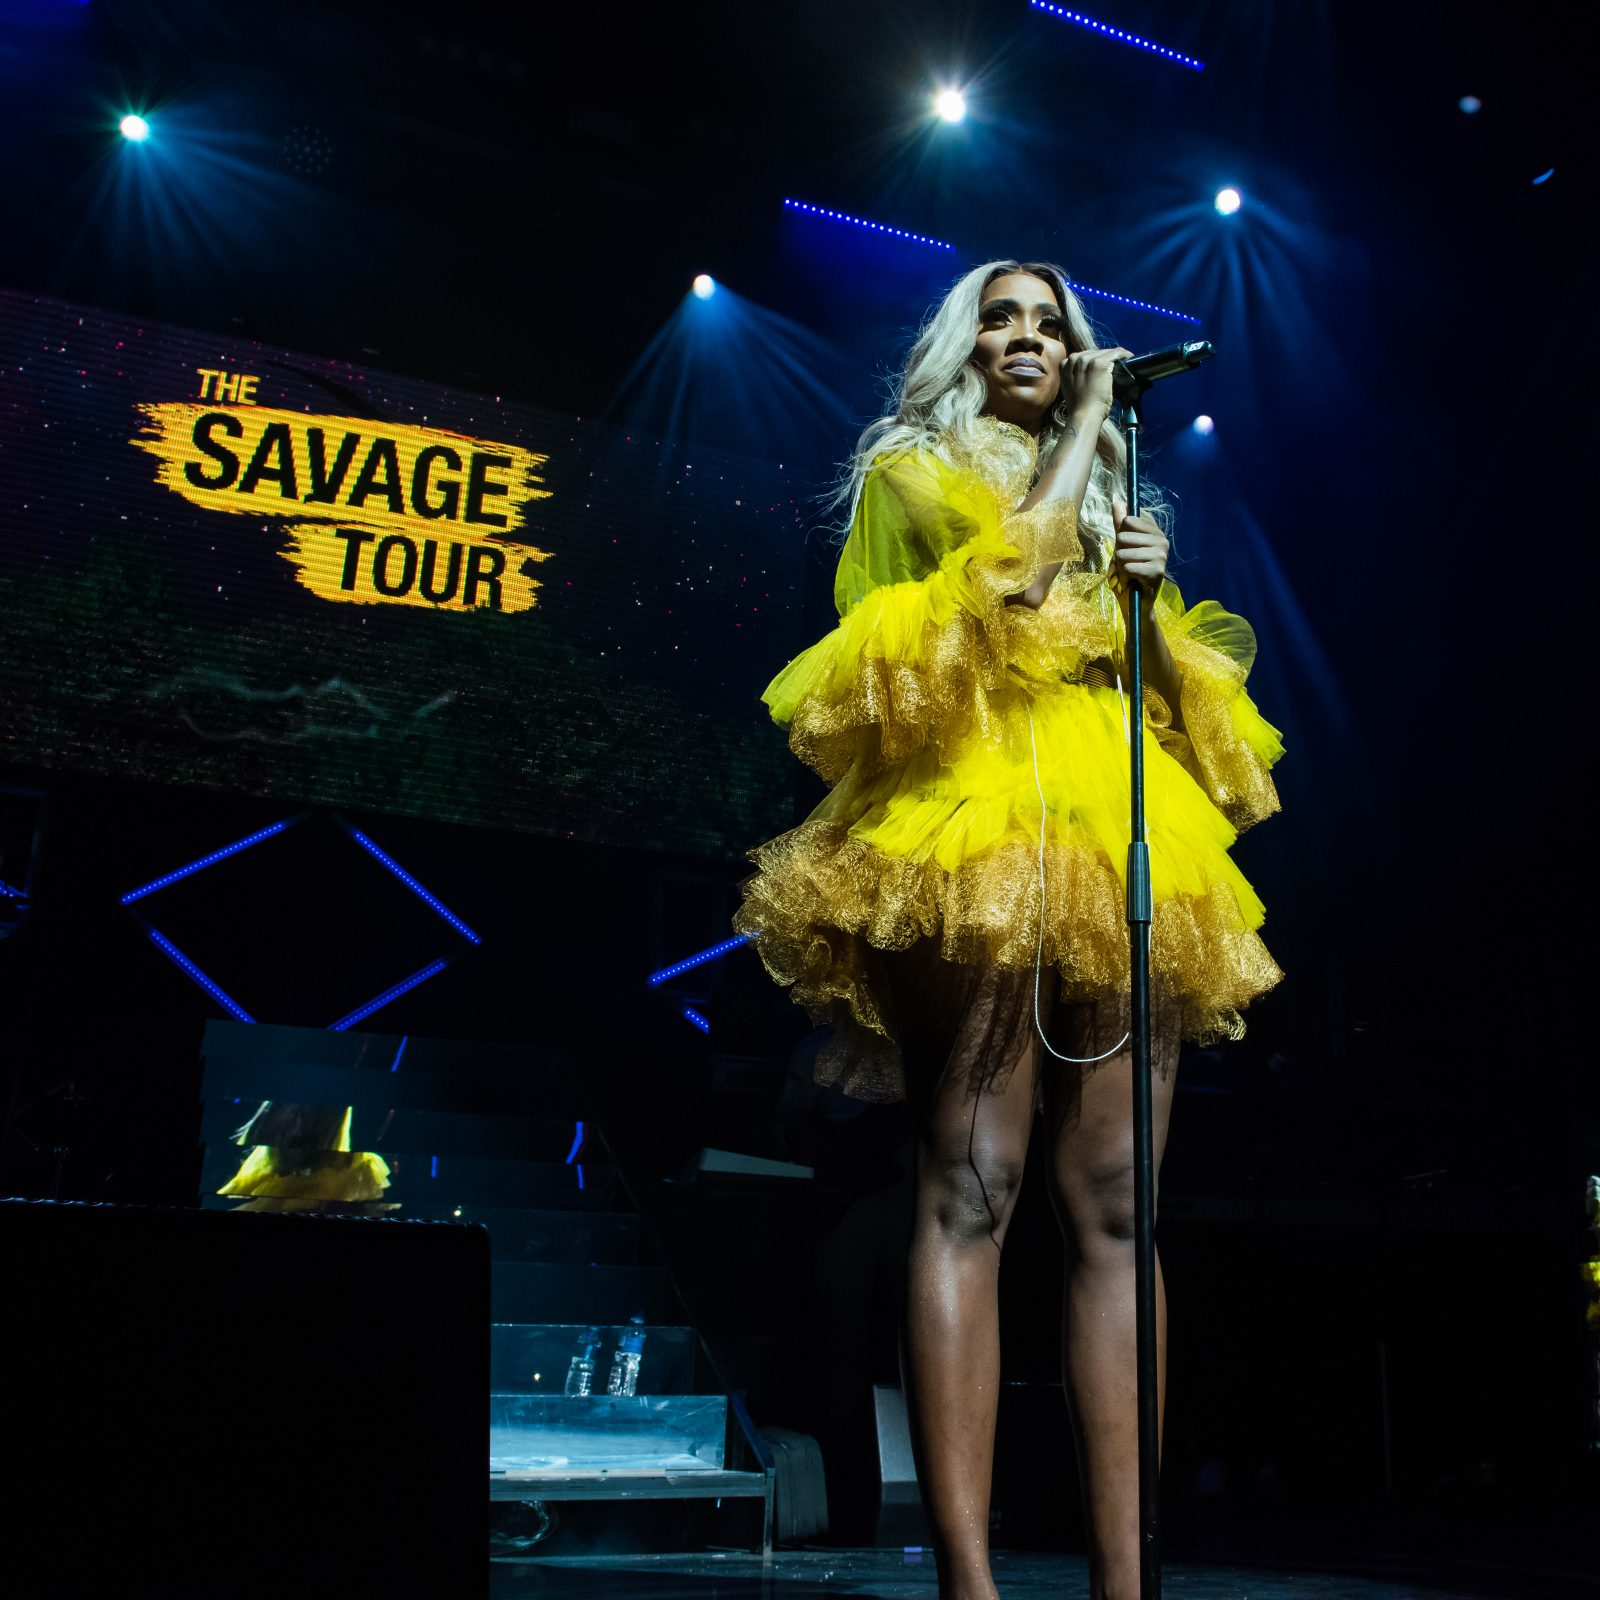 indigo at The O2, London, United Kingdom. 24th August 2018. Tiwa Savage performs on stage for her First solo concert at indigo O2. Photographed by Michael Tubes